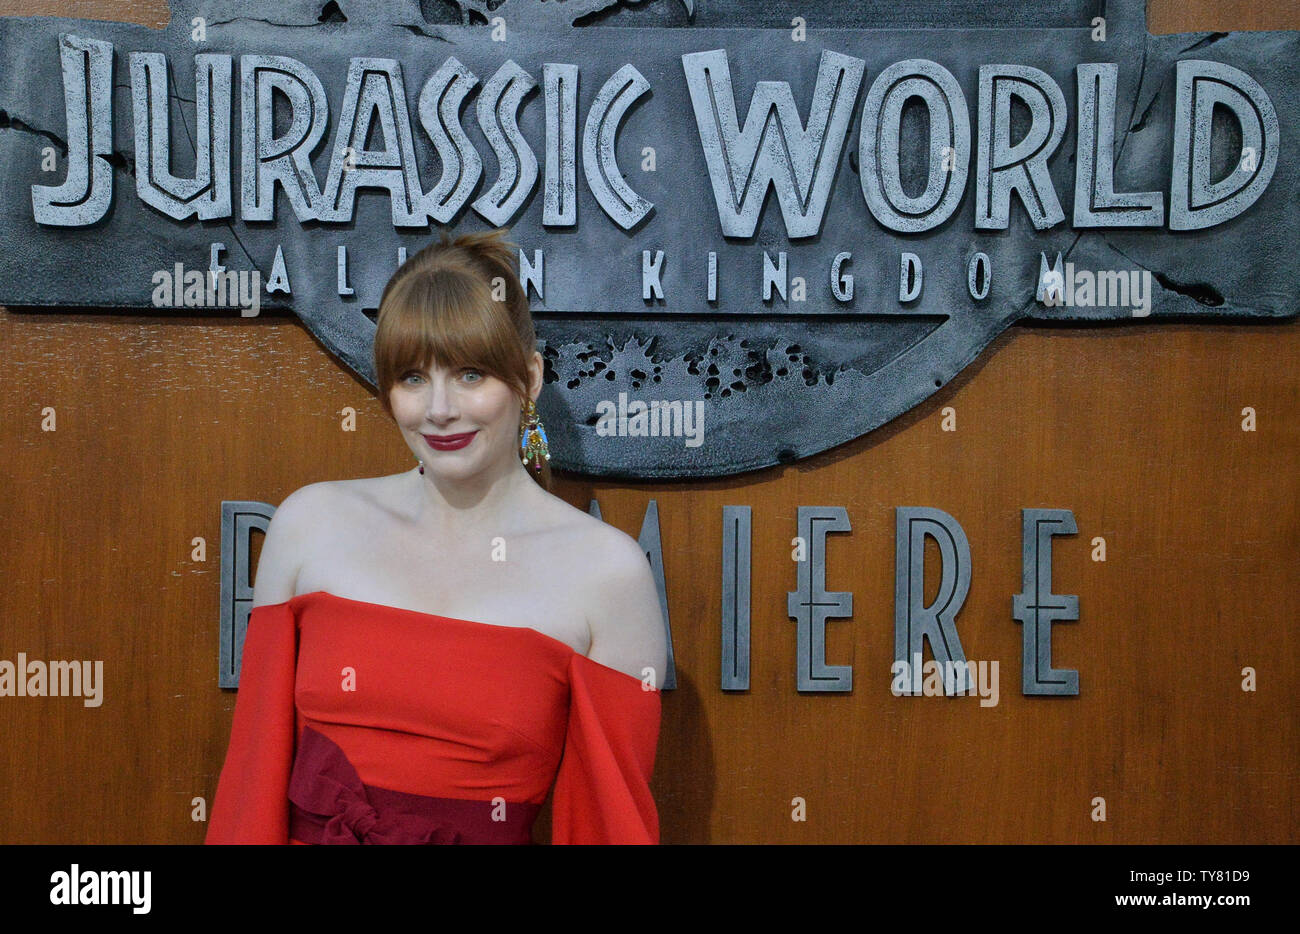 cast member bryce dallas howard attends the premiere of the sci fi motion picture jurassic world fallen kingdom at the walt disney concert hall in los angeles on june 12 2018 storyline when the islands dormant volcano begins roaring to life owen and claire mount a campaign to rescue the remaining dinosaurs from this extinction level event photo by jim ruymenupi TY81D9